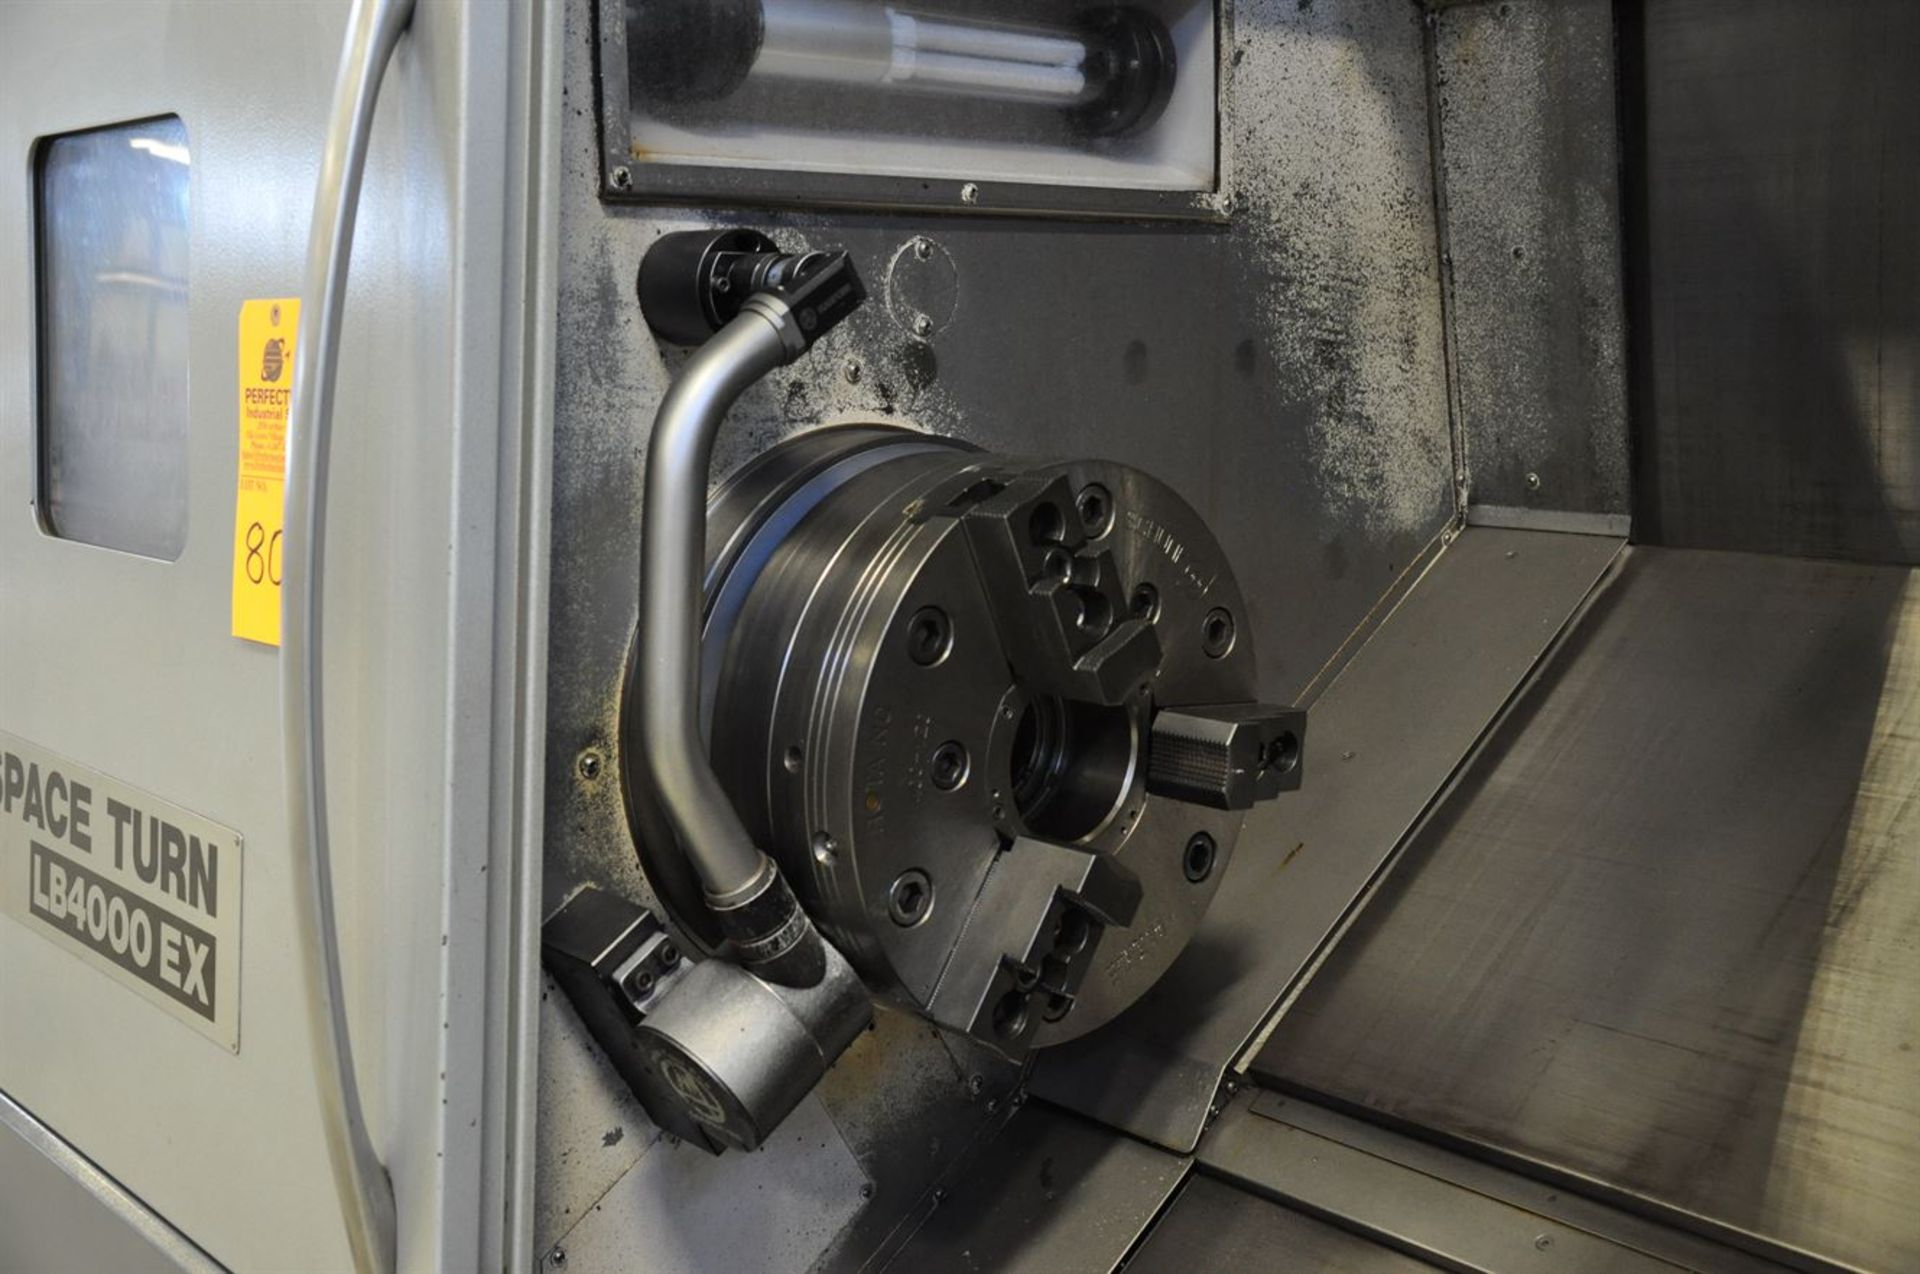 "2012 OKUMA SPACE TURN LB4000 EX Turning Center, s/n 163014, w/ OSP-P200LA Control, 3.5"" Bore, SCHUNK - Image 4 of 8"